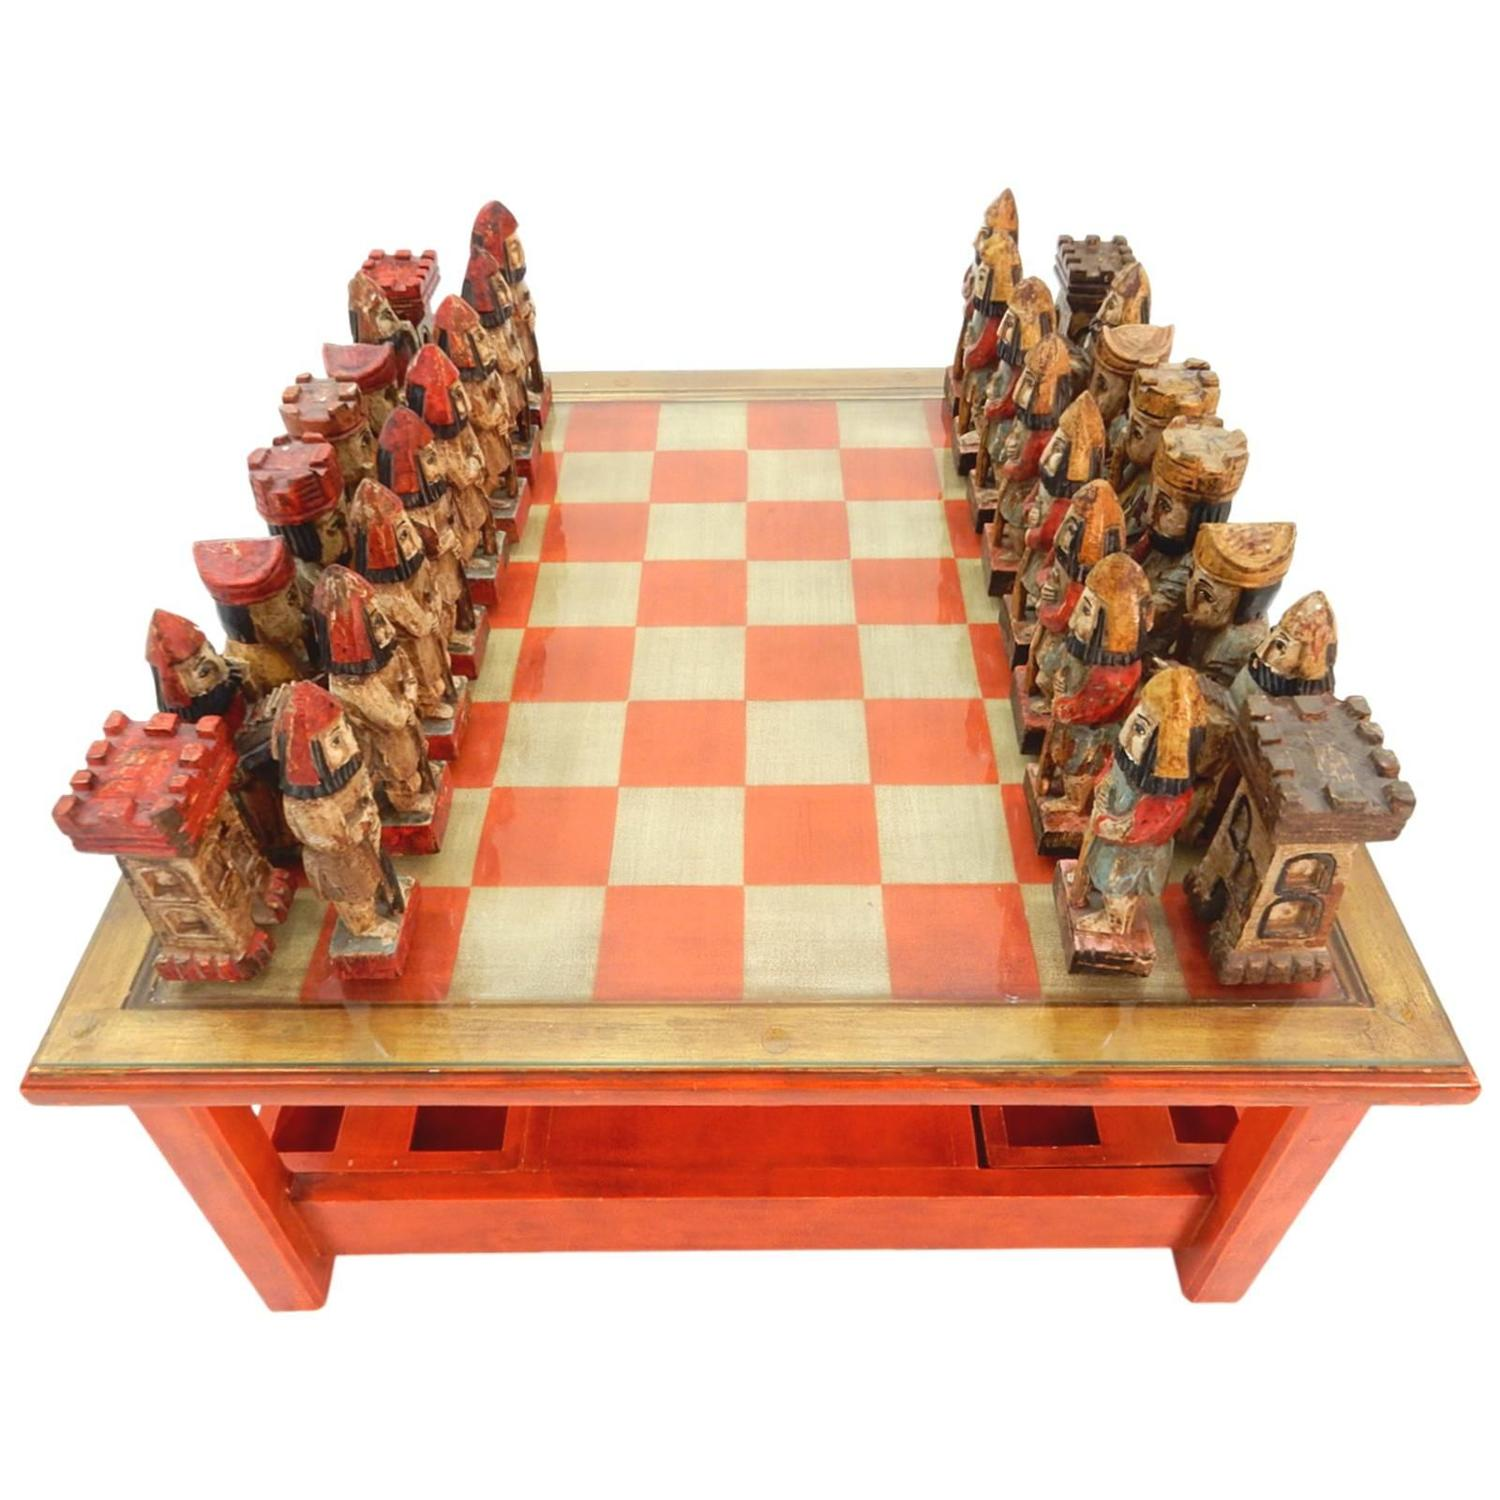 Antique Chess Boards 107 For Sale on 1stdibs